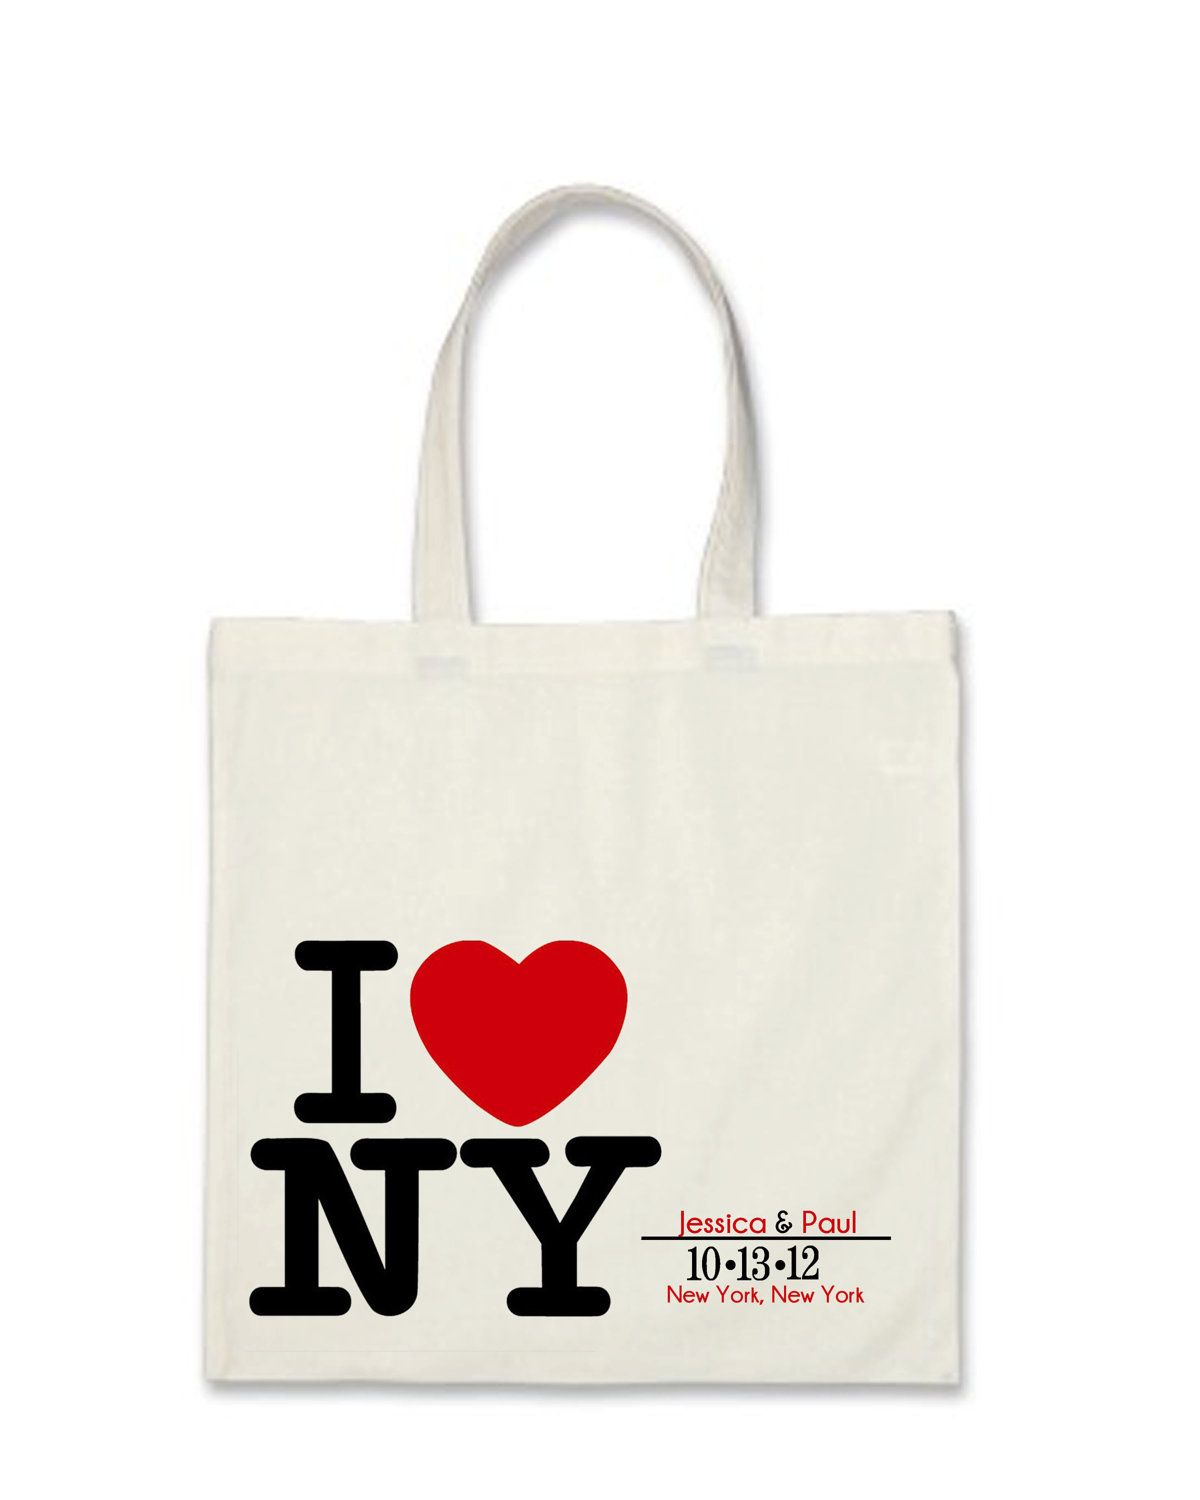 10 New York Wedding Welcome Bags | Favors, Weddings and Wedding